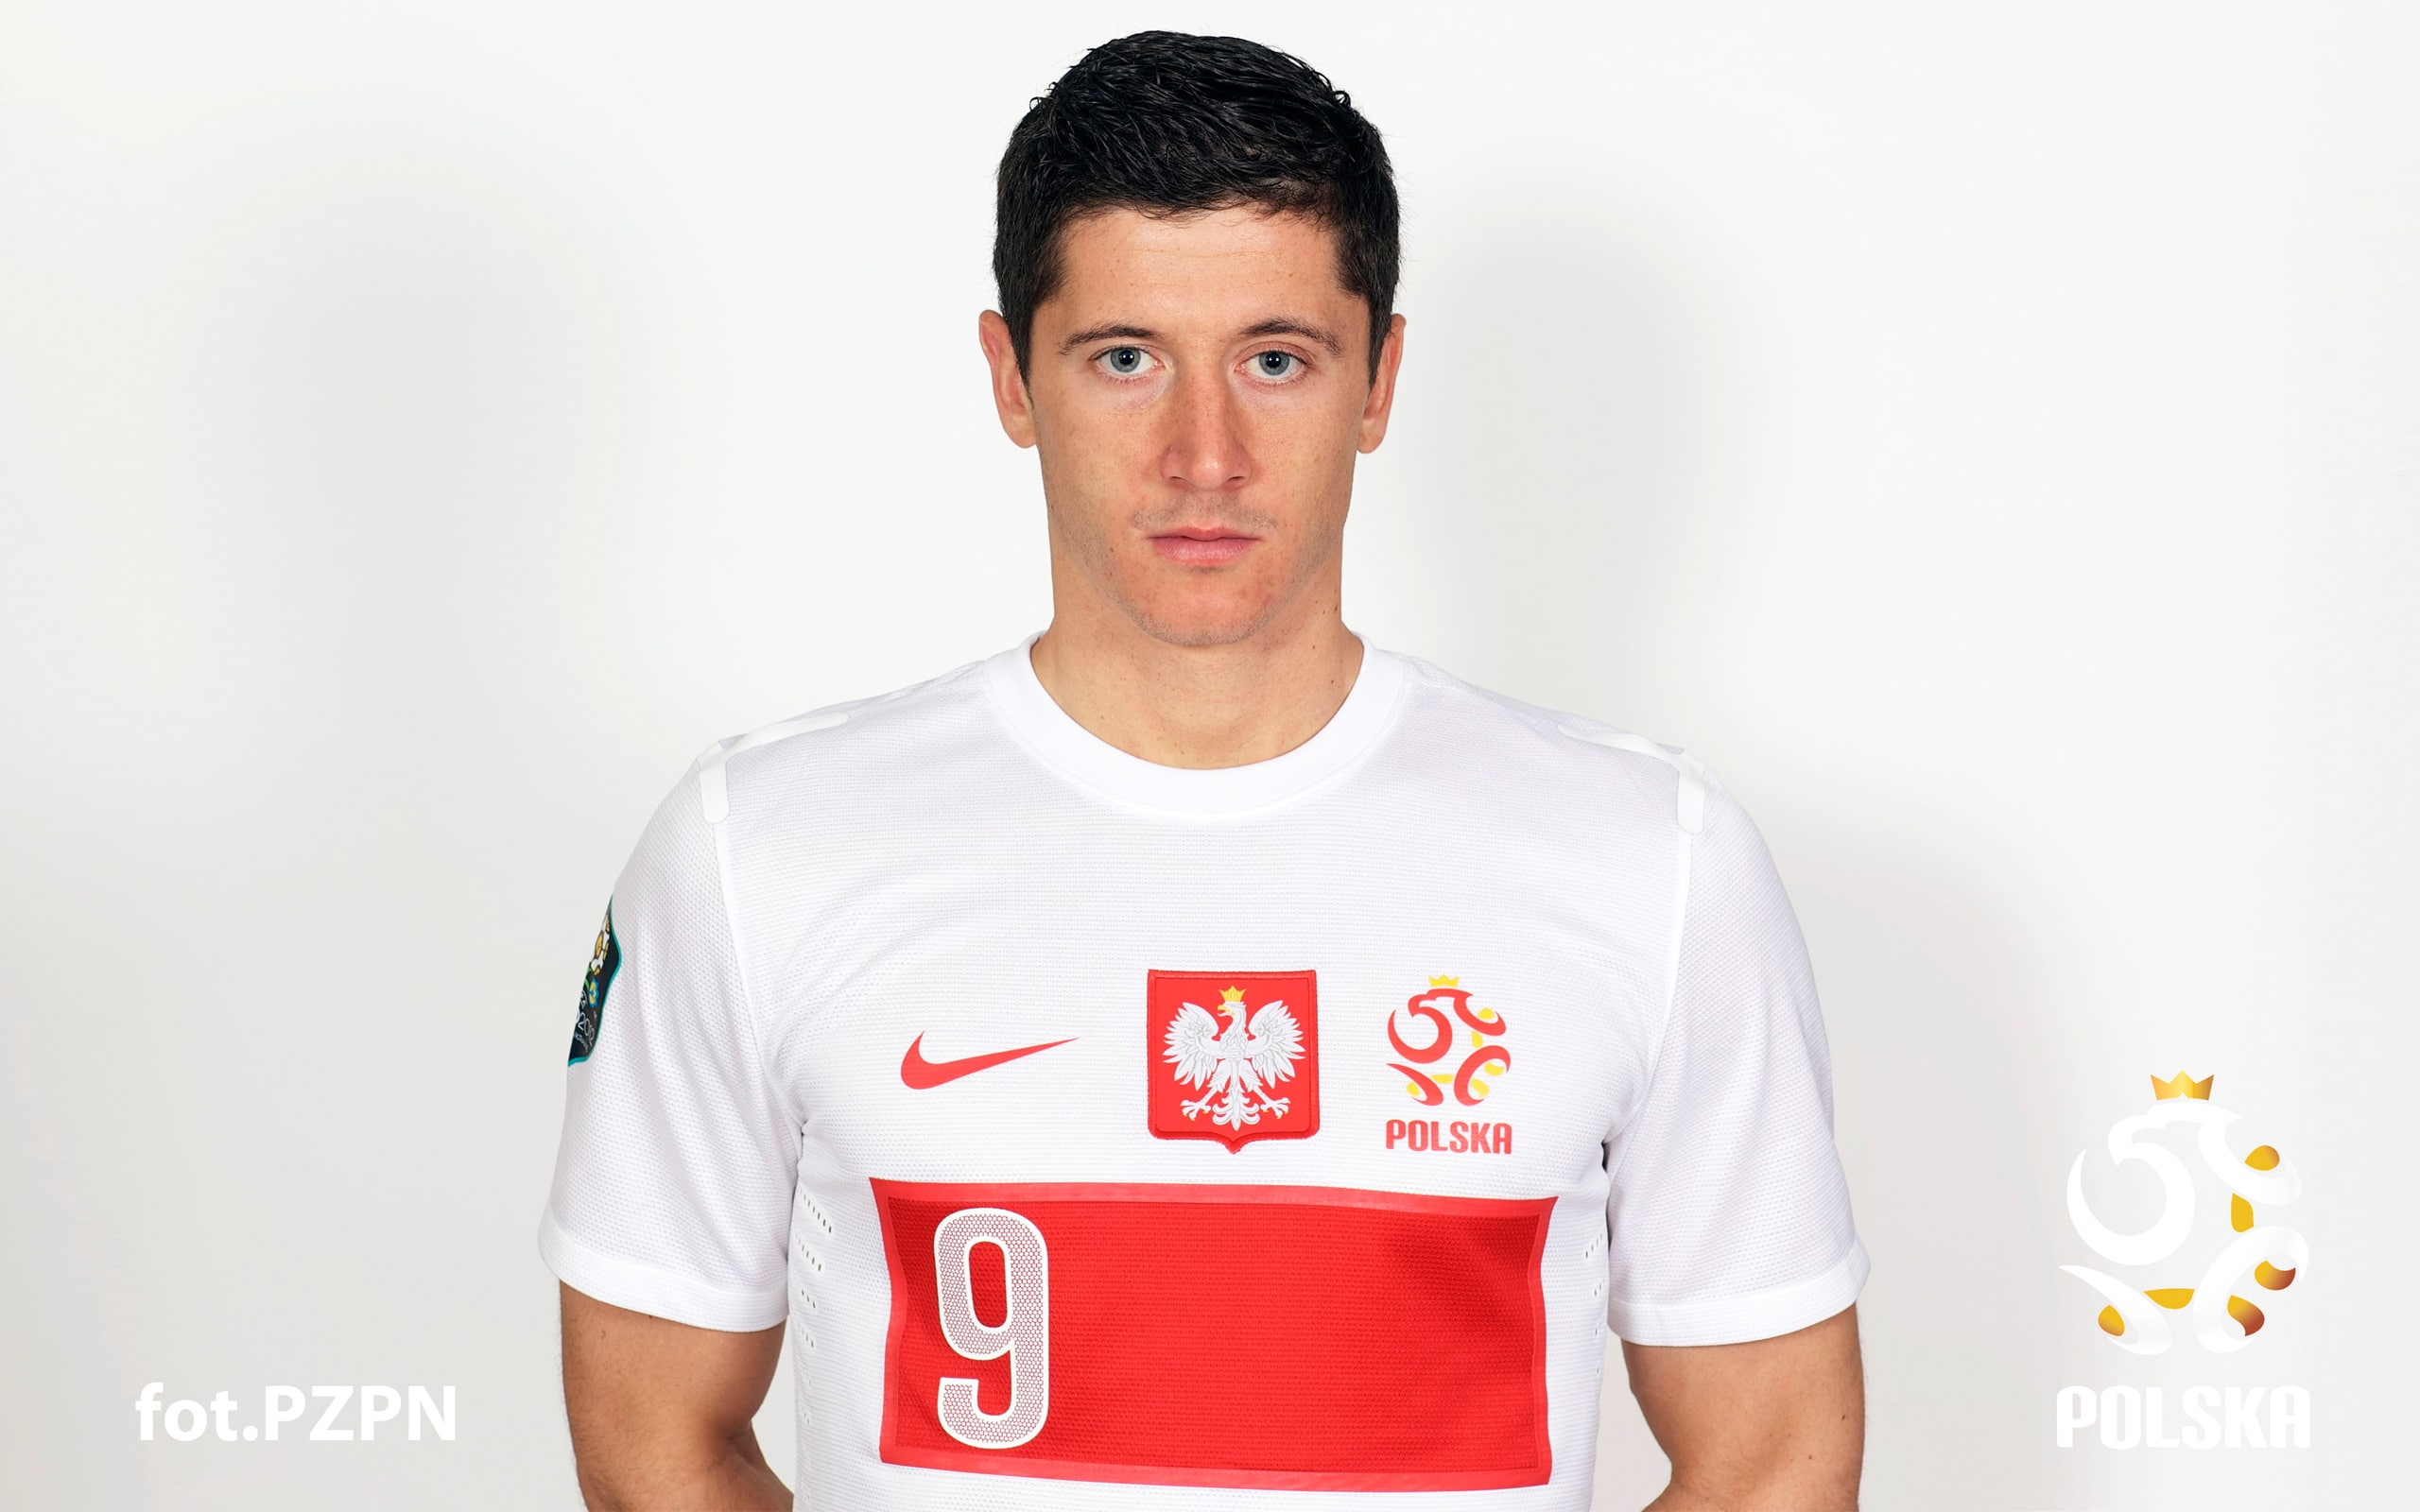 Robert-Lewandowski-Poland